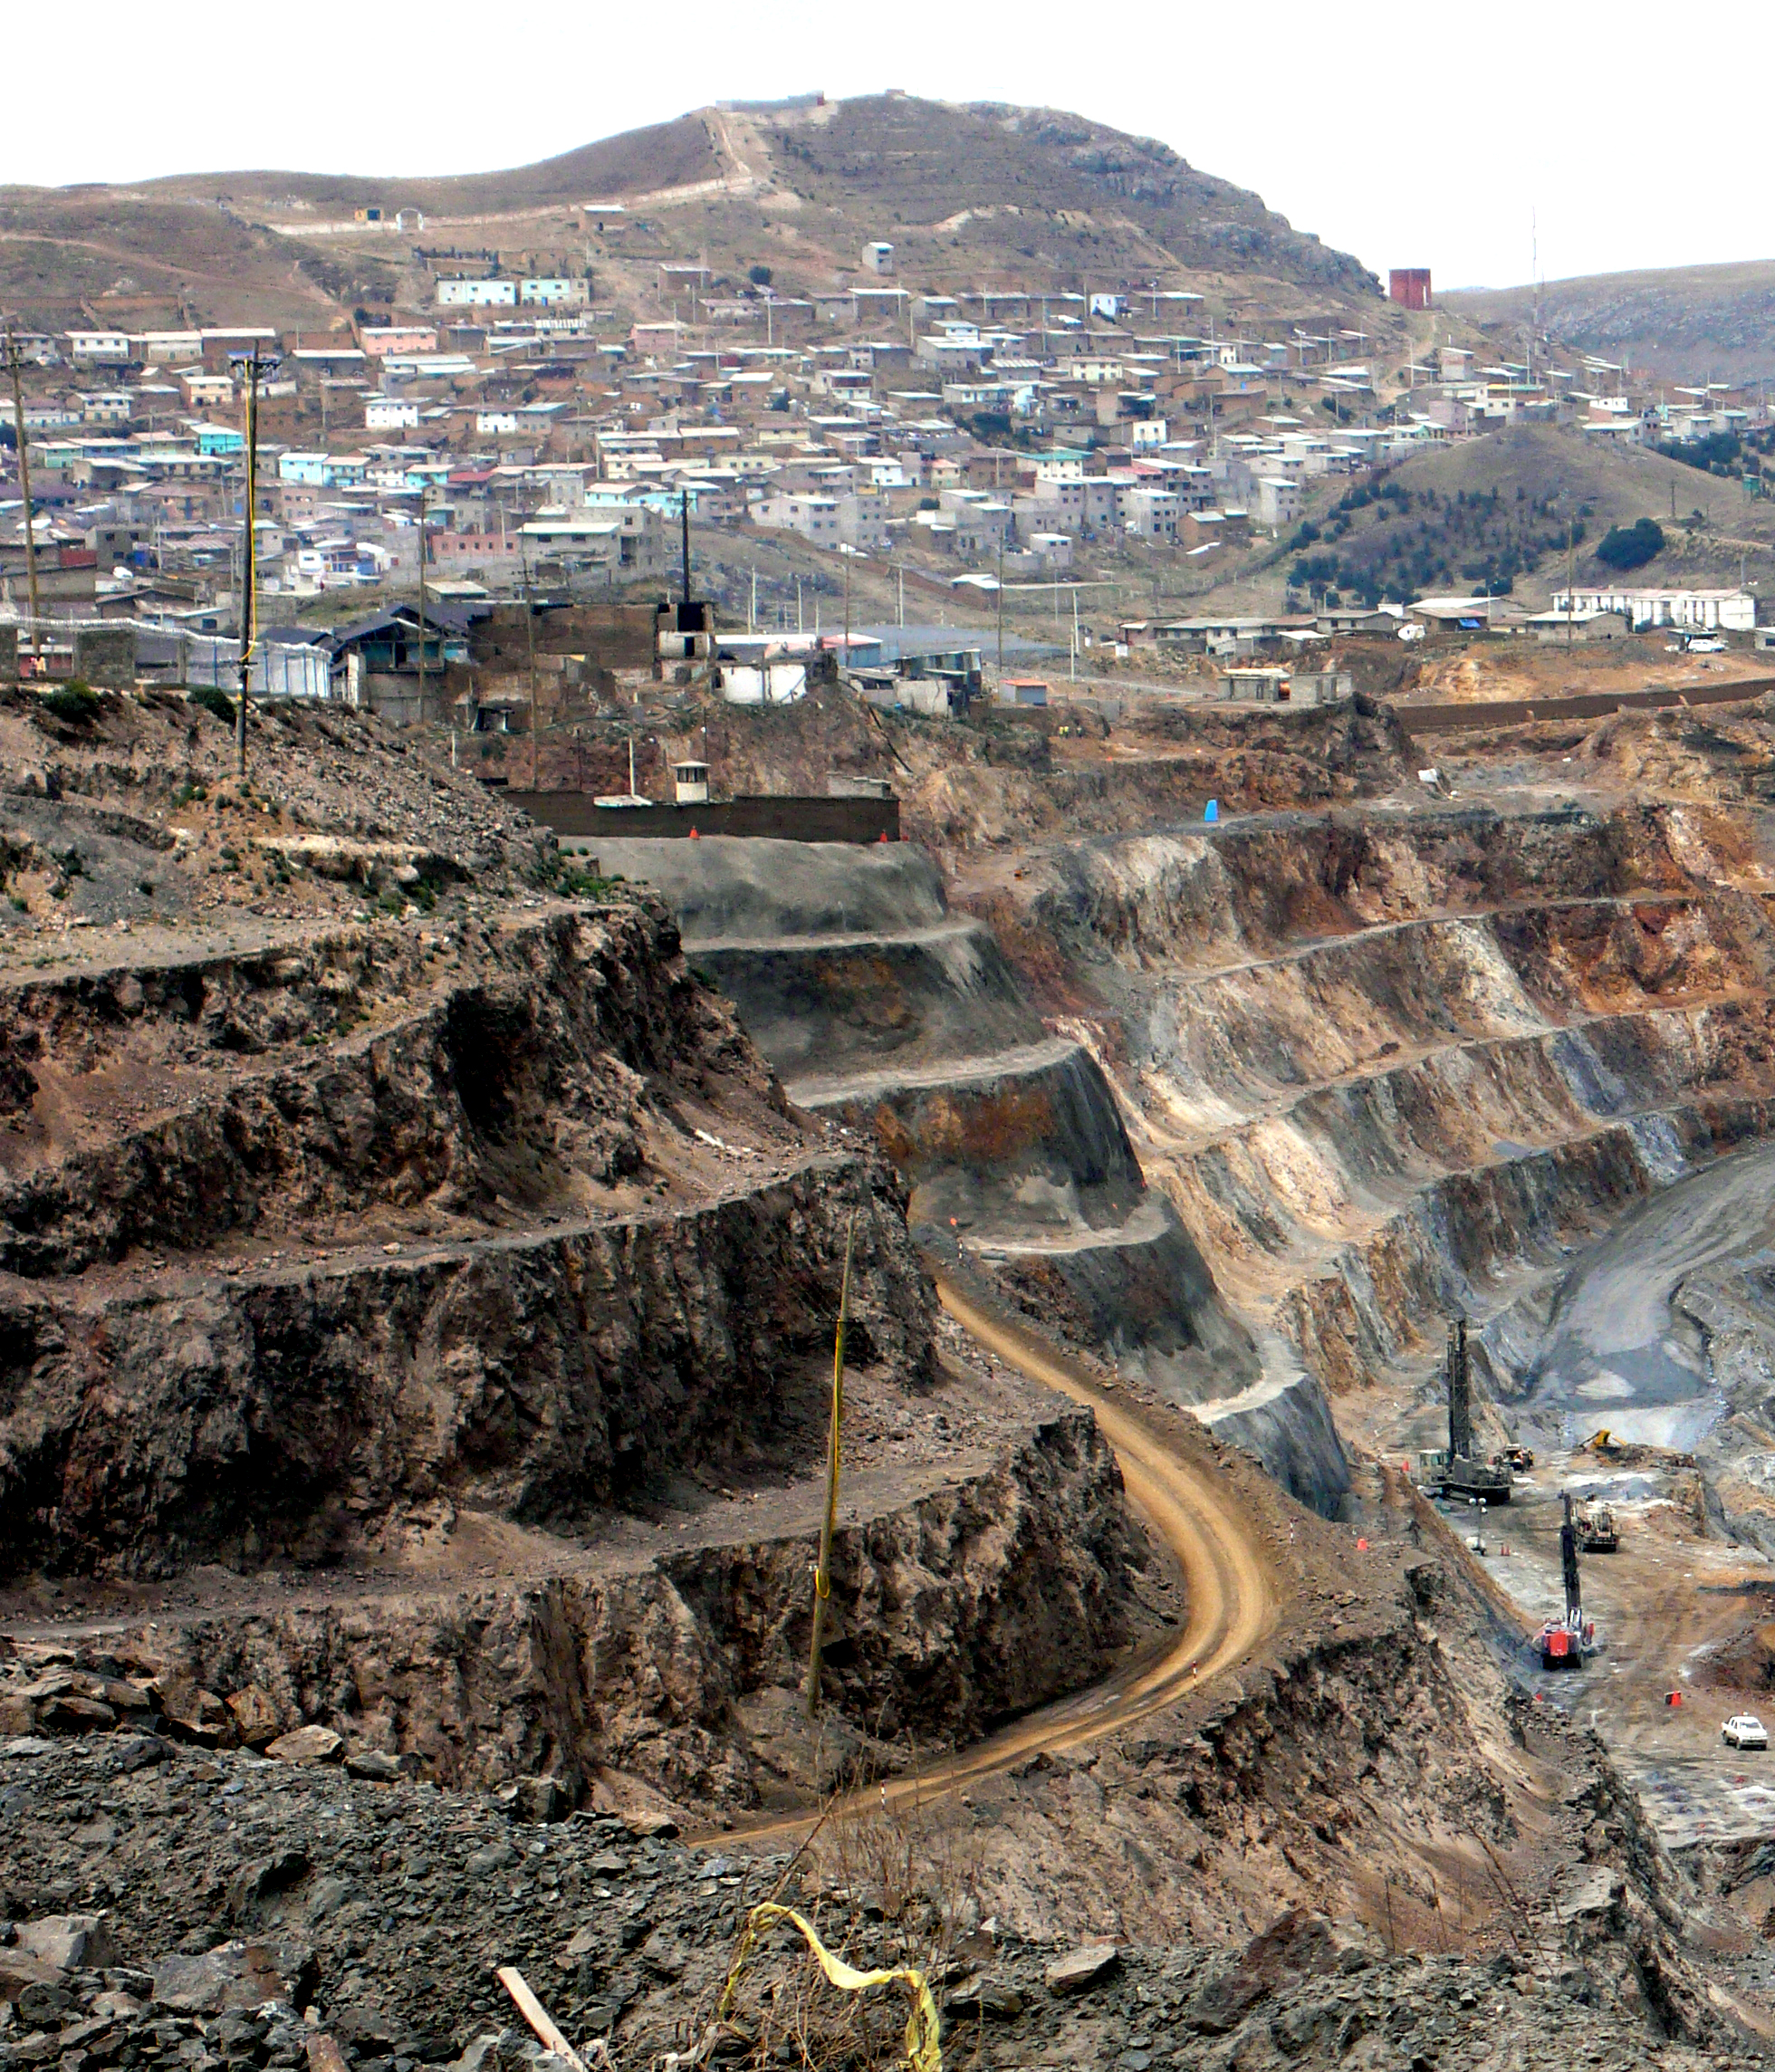 Mining activities in Cerro de Pasco, the capital of the Chaupimarca district and the Pasco Region